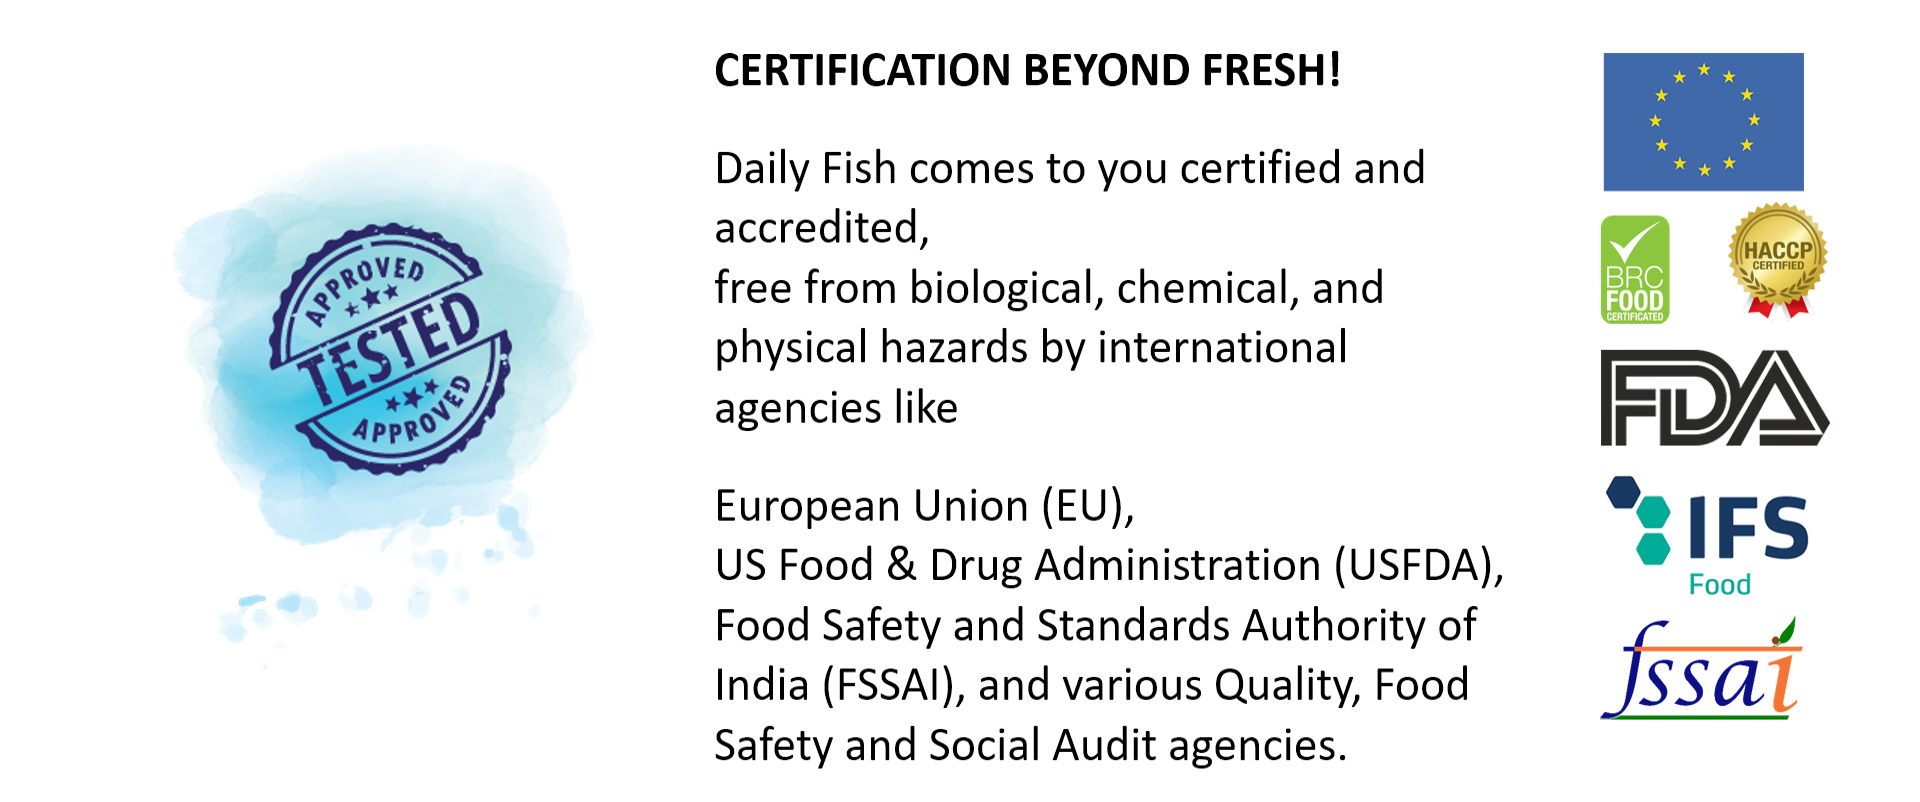 Daily Fish India Think Beyond Fresh_5